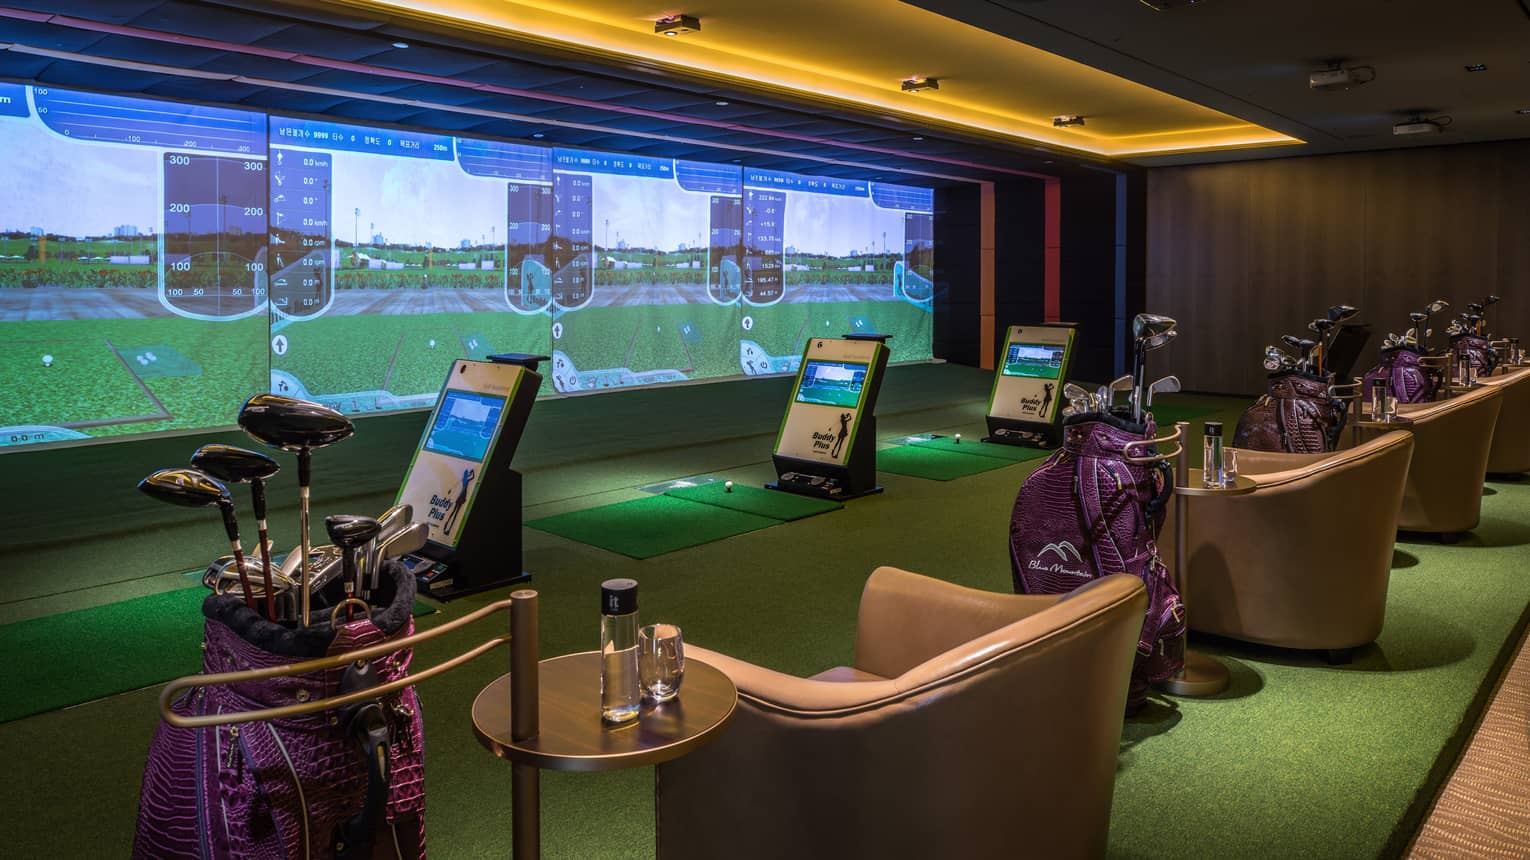 Wall with animated screens, 3D golf course game centre, armchairs with water bottles